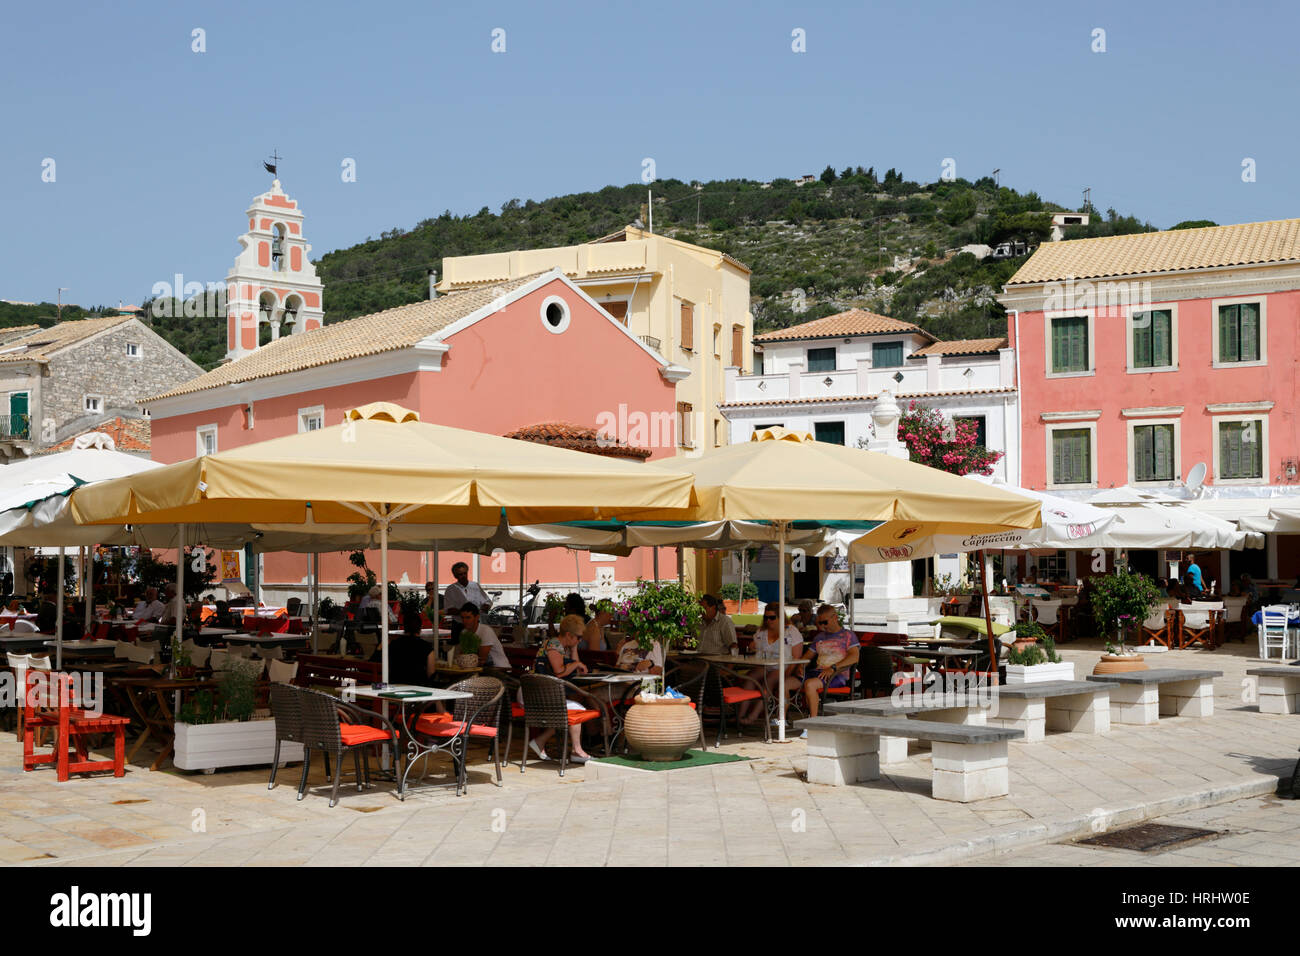 Cafes and restaurants in main square of Gaios town, Paxos, Ionian Islands, Greek Islands, Greece Stock Photo